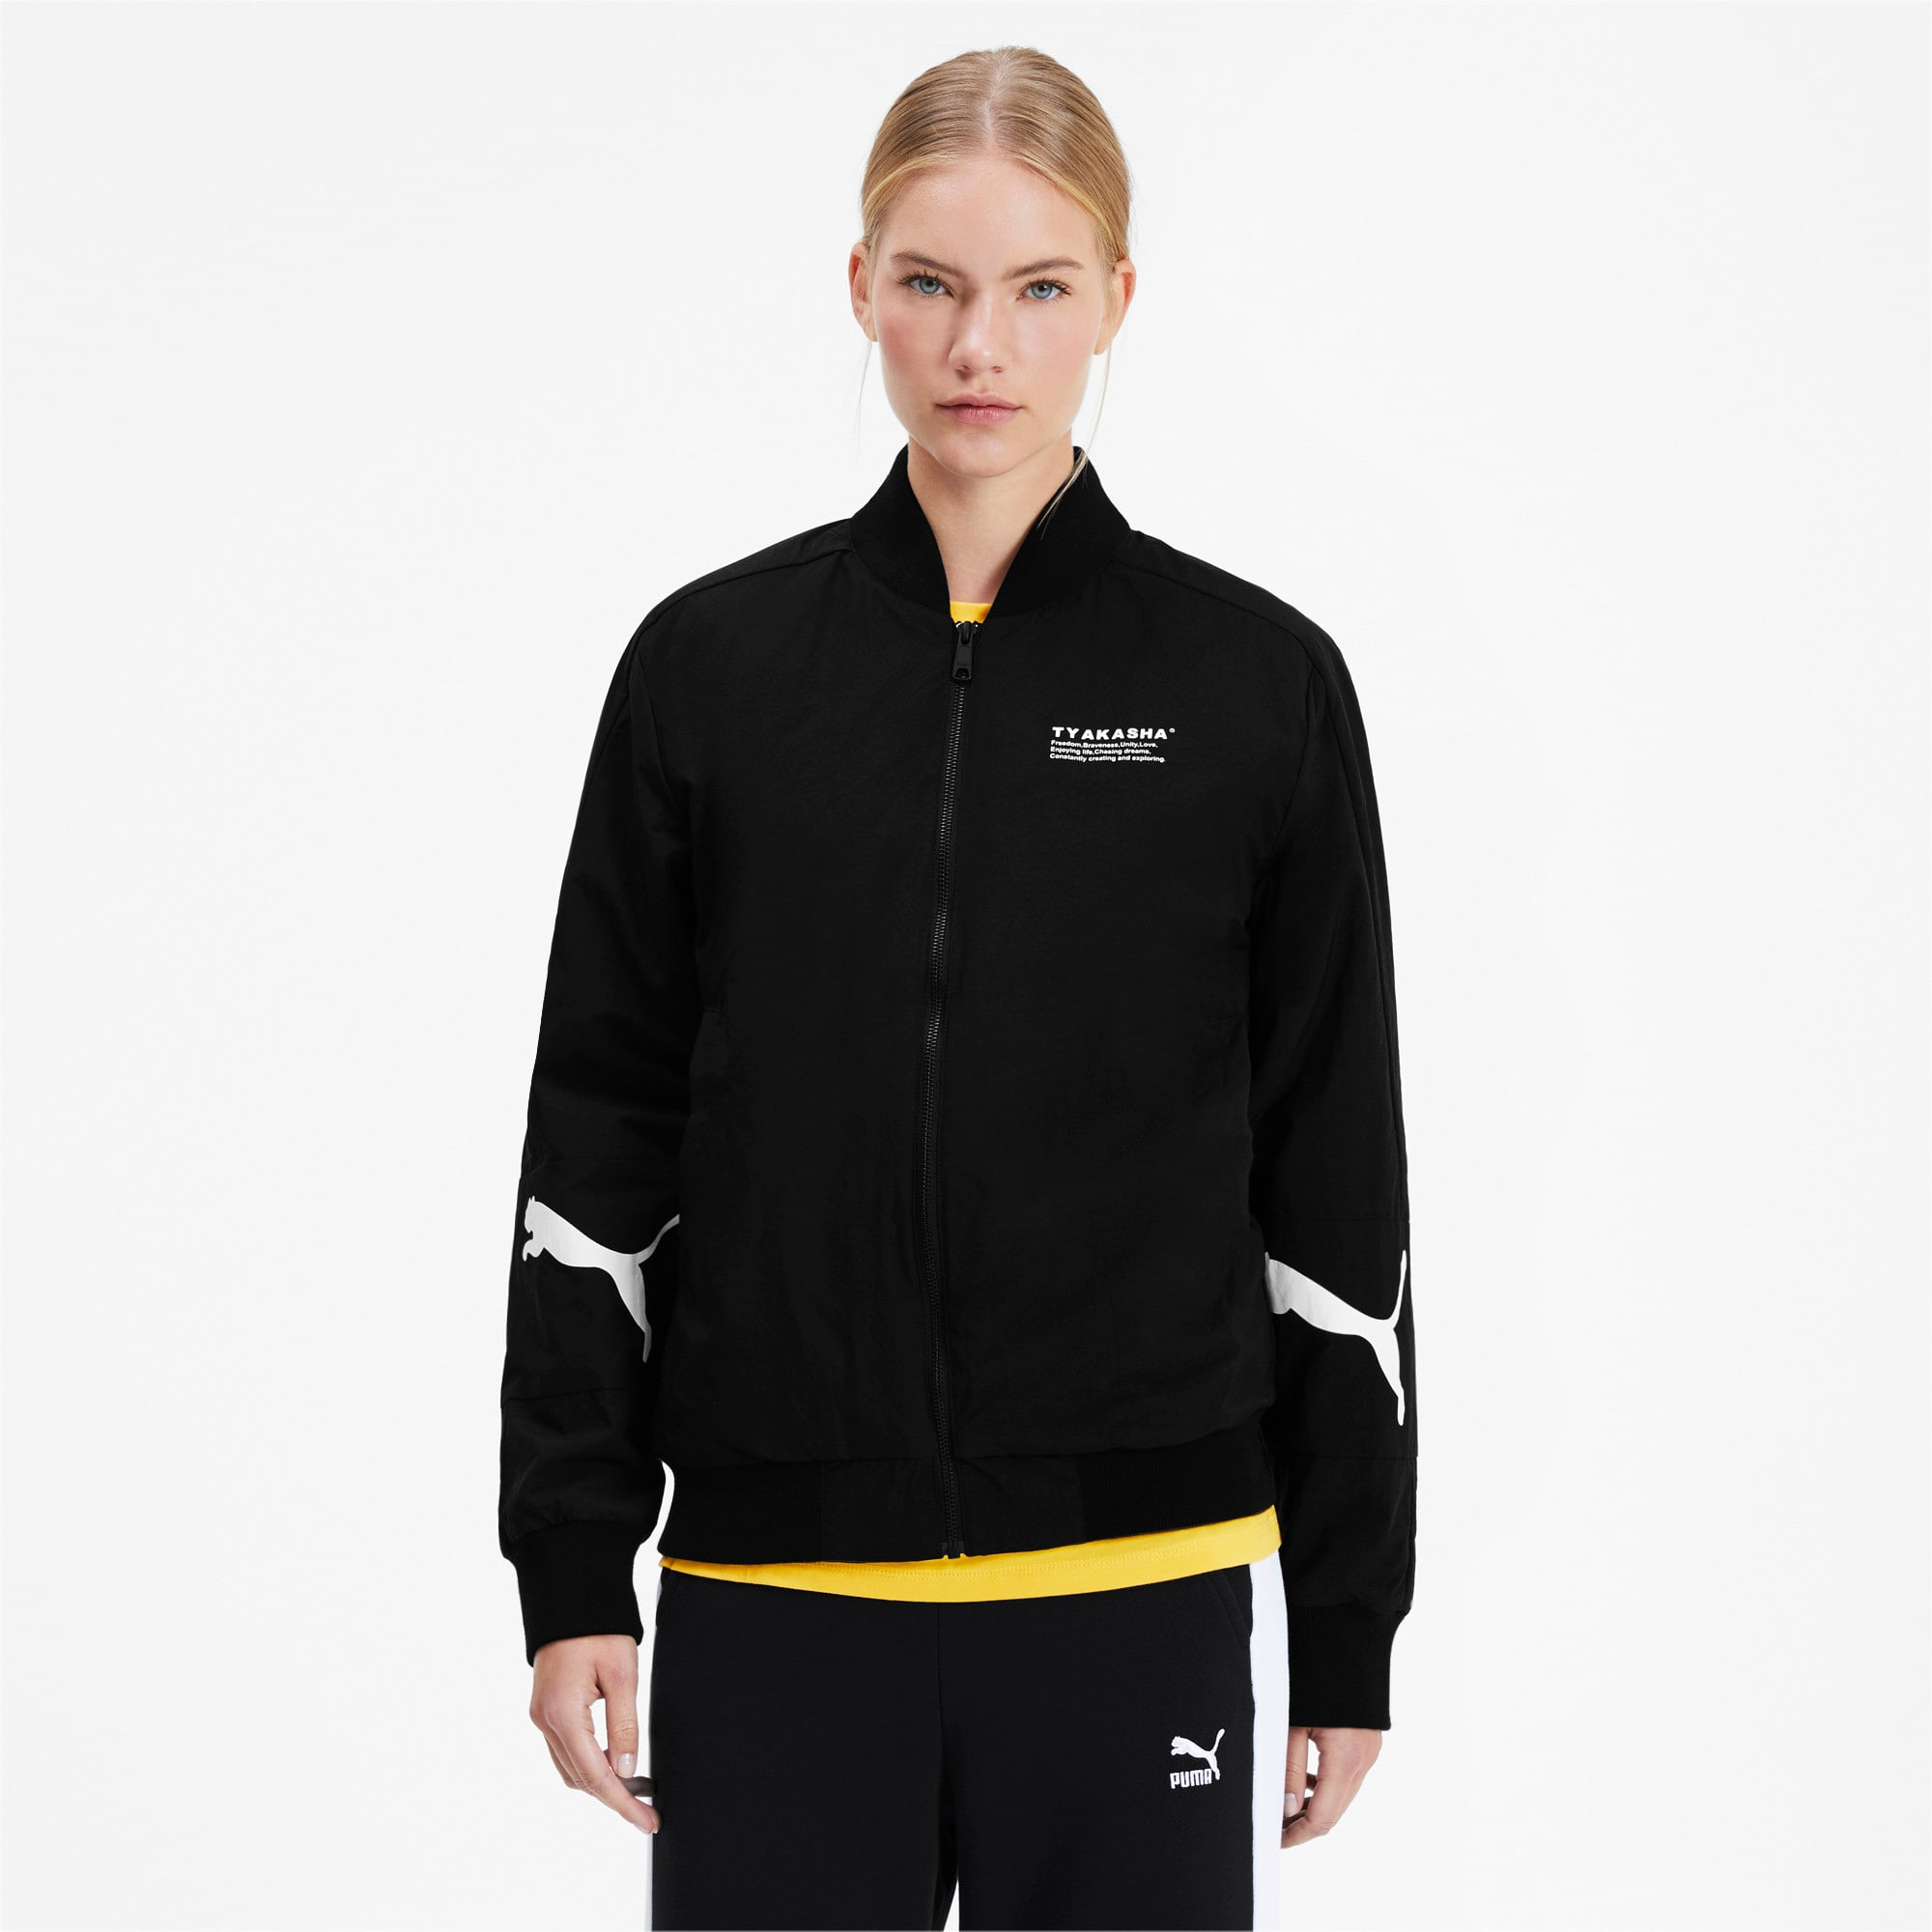 Thumbnail 2 of PUMA x TYAKASHA Woven Bomber Jacket, Puma Black, medium